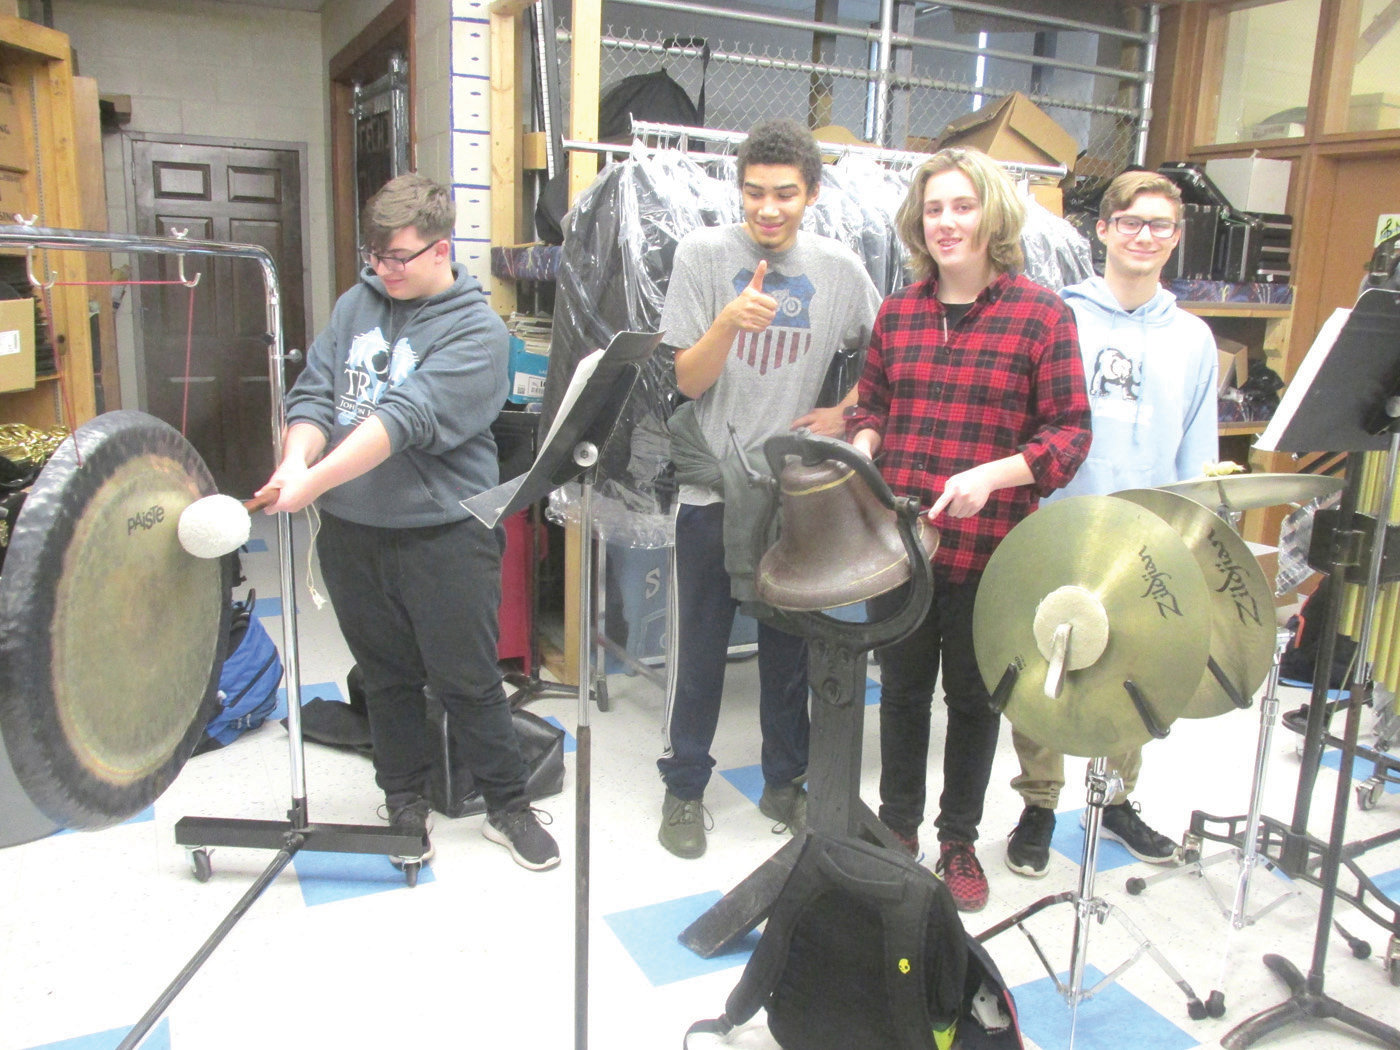 PERCUSSION PALS: Joseph Johnson will sound the gong, while Rafael River assists in another area during next Thursday night's Holiday Concert. Oliver Littlefield will use a borrowed antique ship's bell and the group also includes Jack Frenier. (Photos by Pete Fontaine)